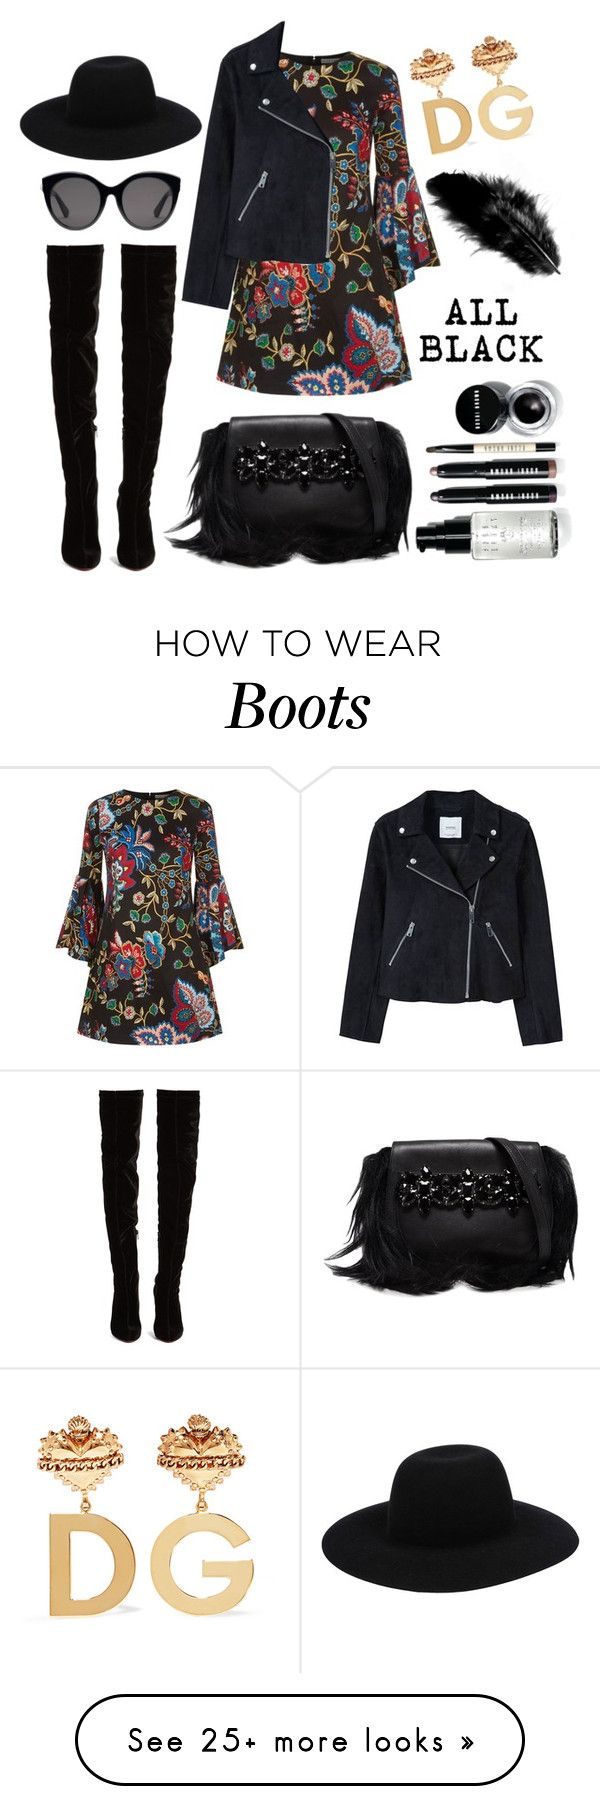 """Black Boots"" by mayashireenjoe on Polyvore featuring Christian Louboutin, Alice + Olivia, Off-White, MANGO, GEDEBE, Gucci, Dolce&Gabbana and Bobbi Brown Cosmetics"